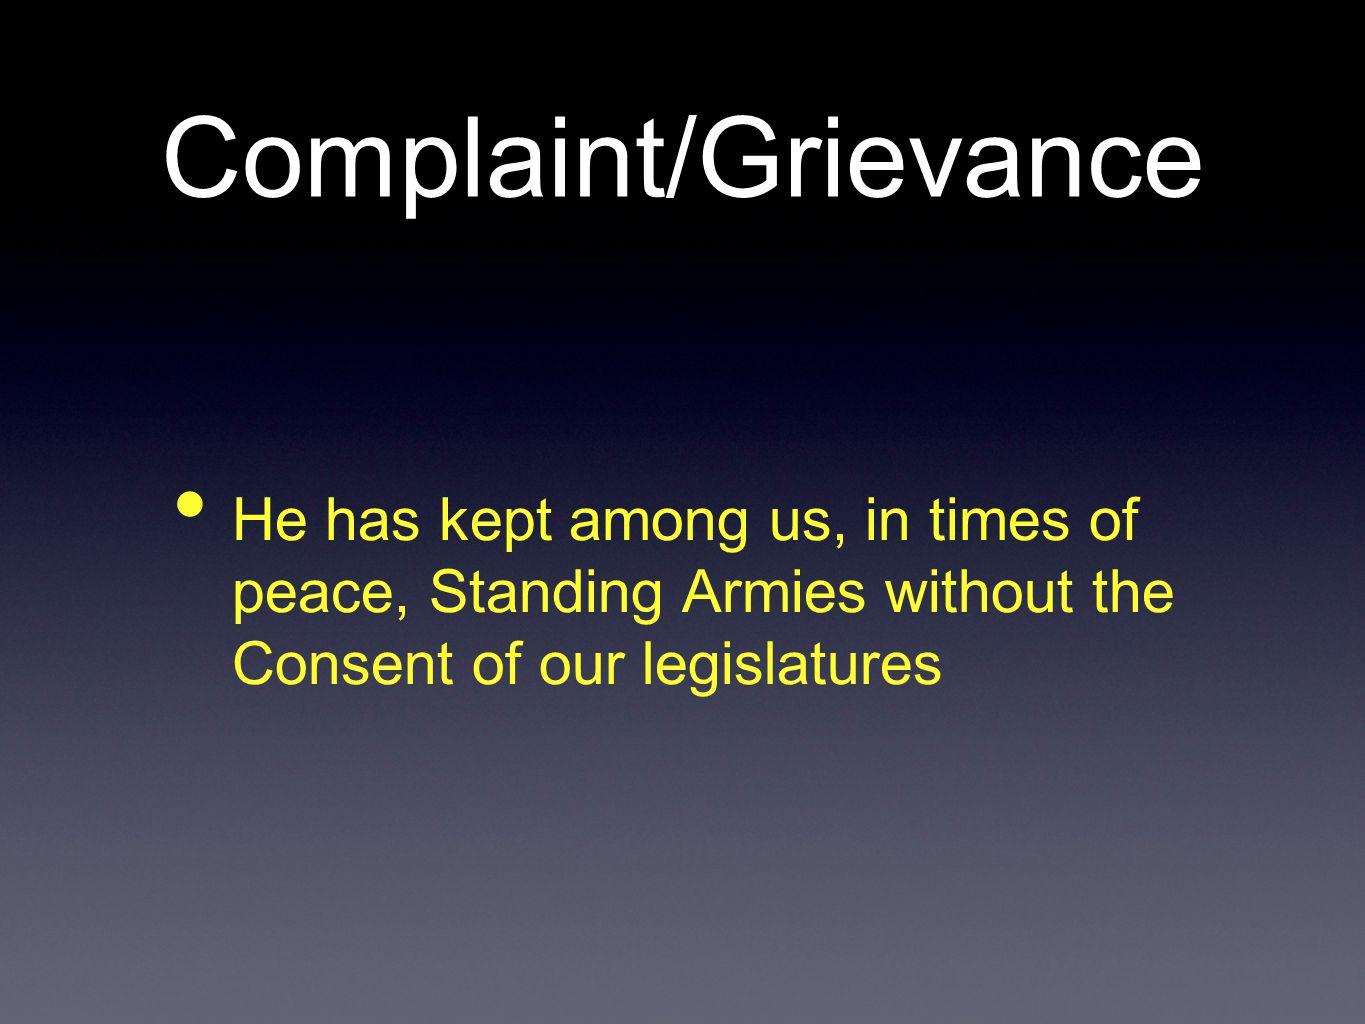 Complaint/Grievance He has kept among us, in times of peace, Standing Armies without the Consent of our legislatures